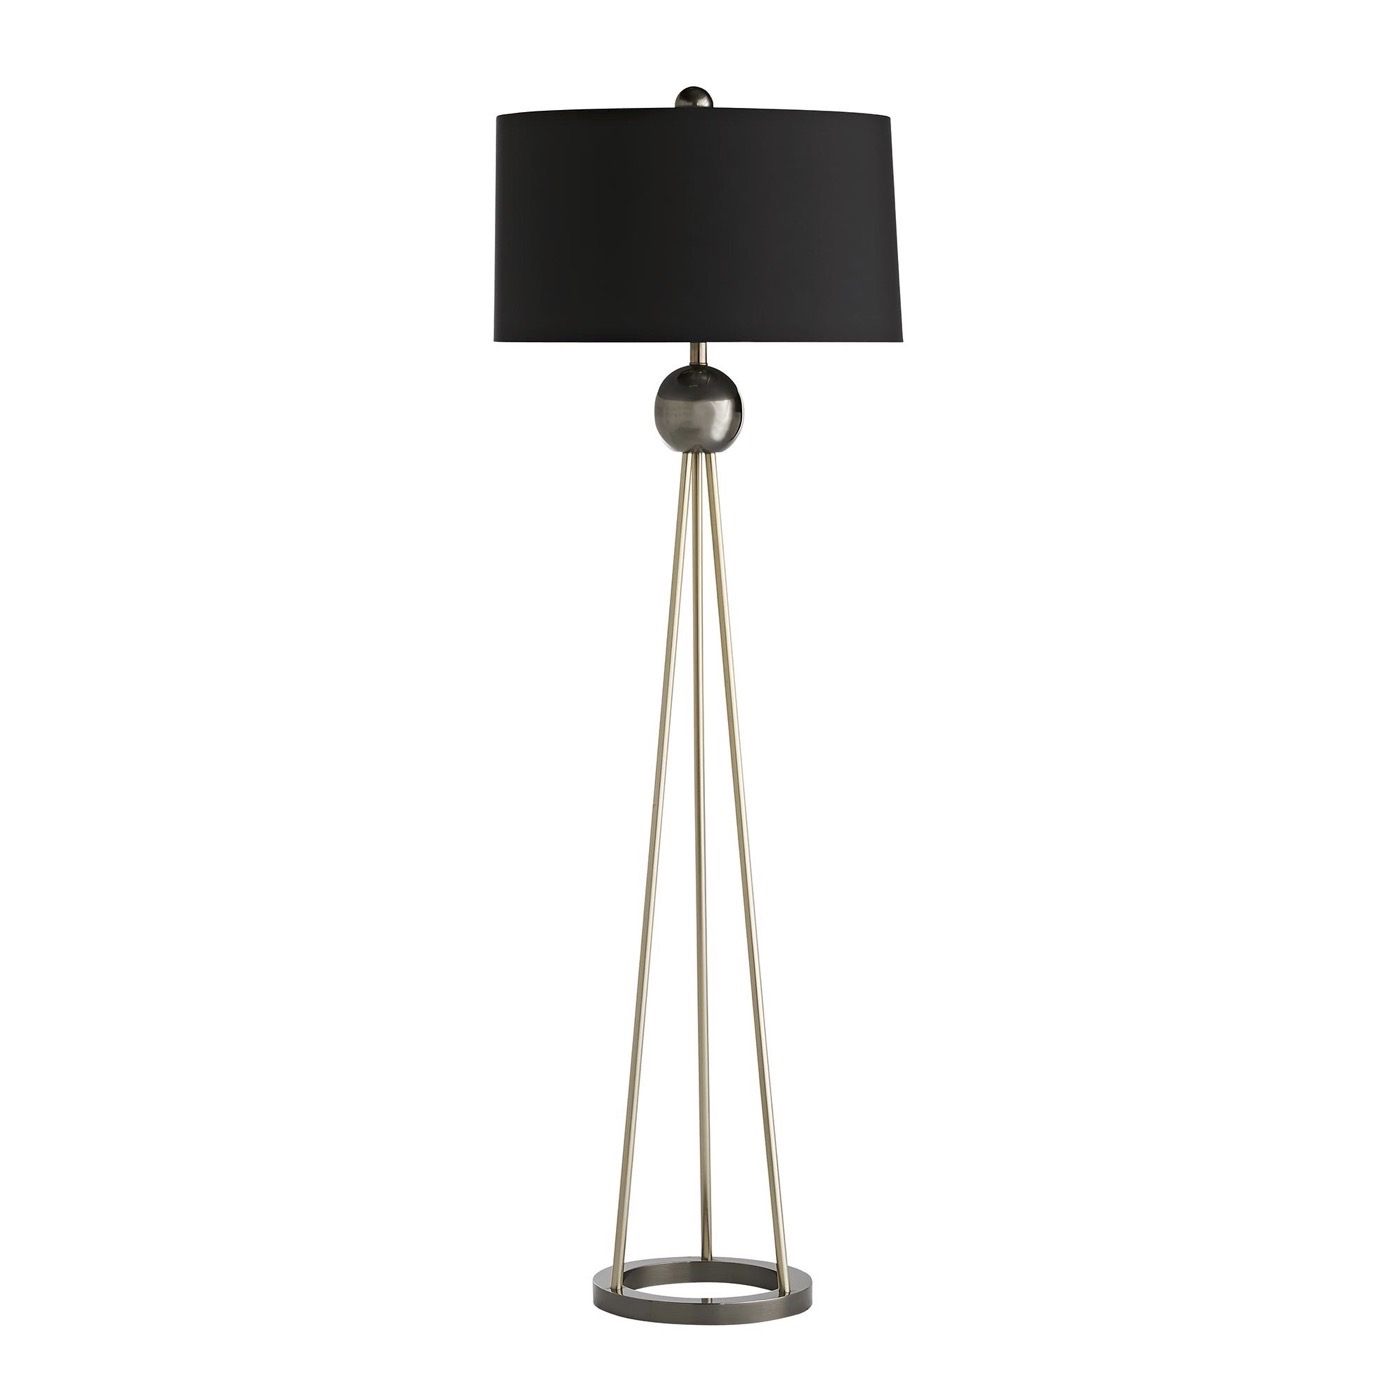 Haley Br Silver Floor Lamp Black